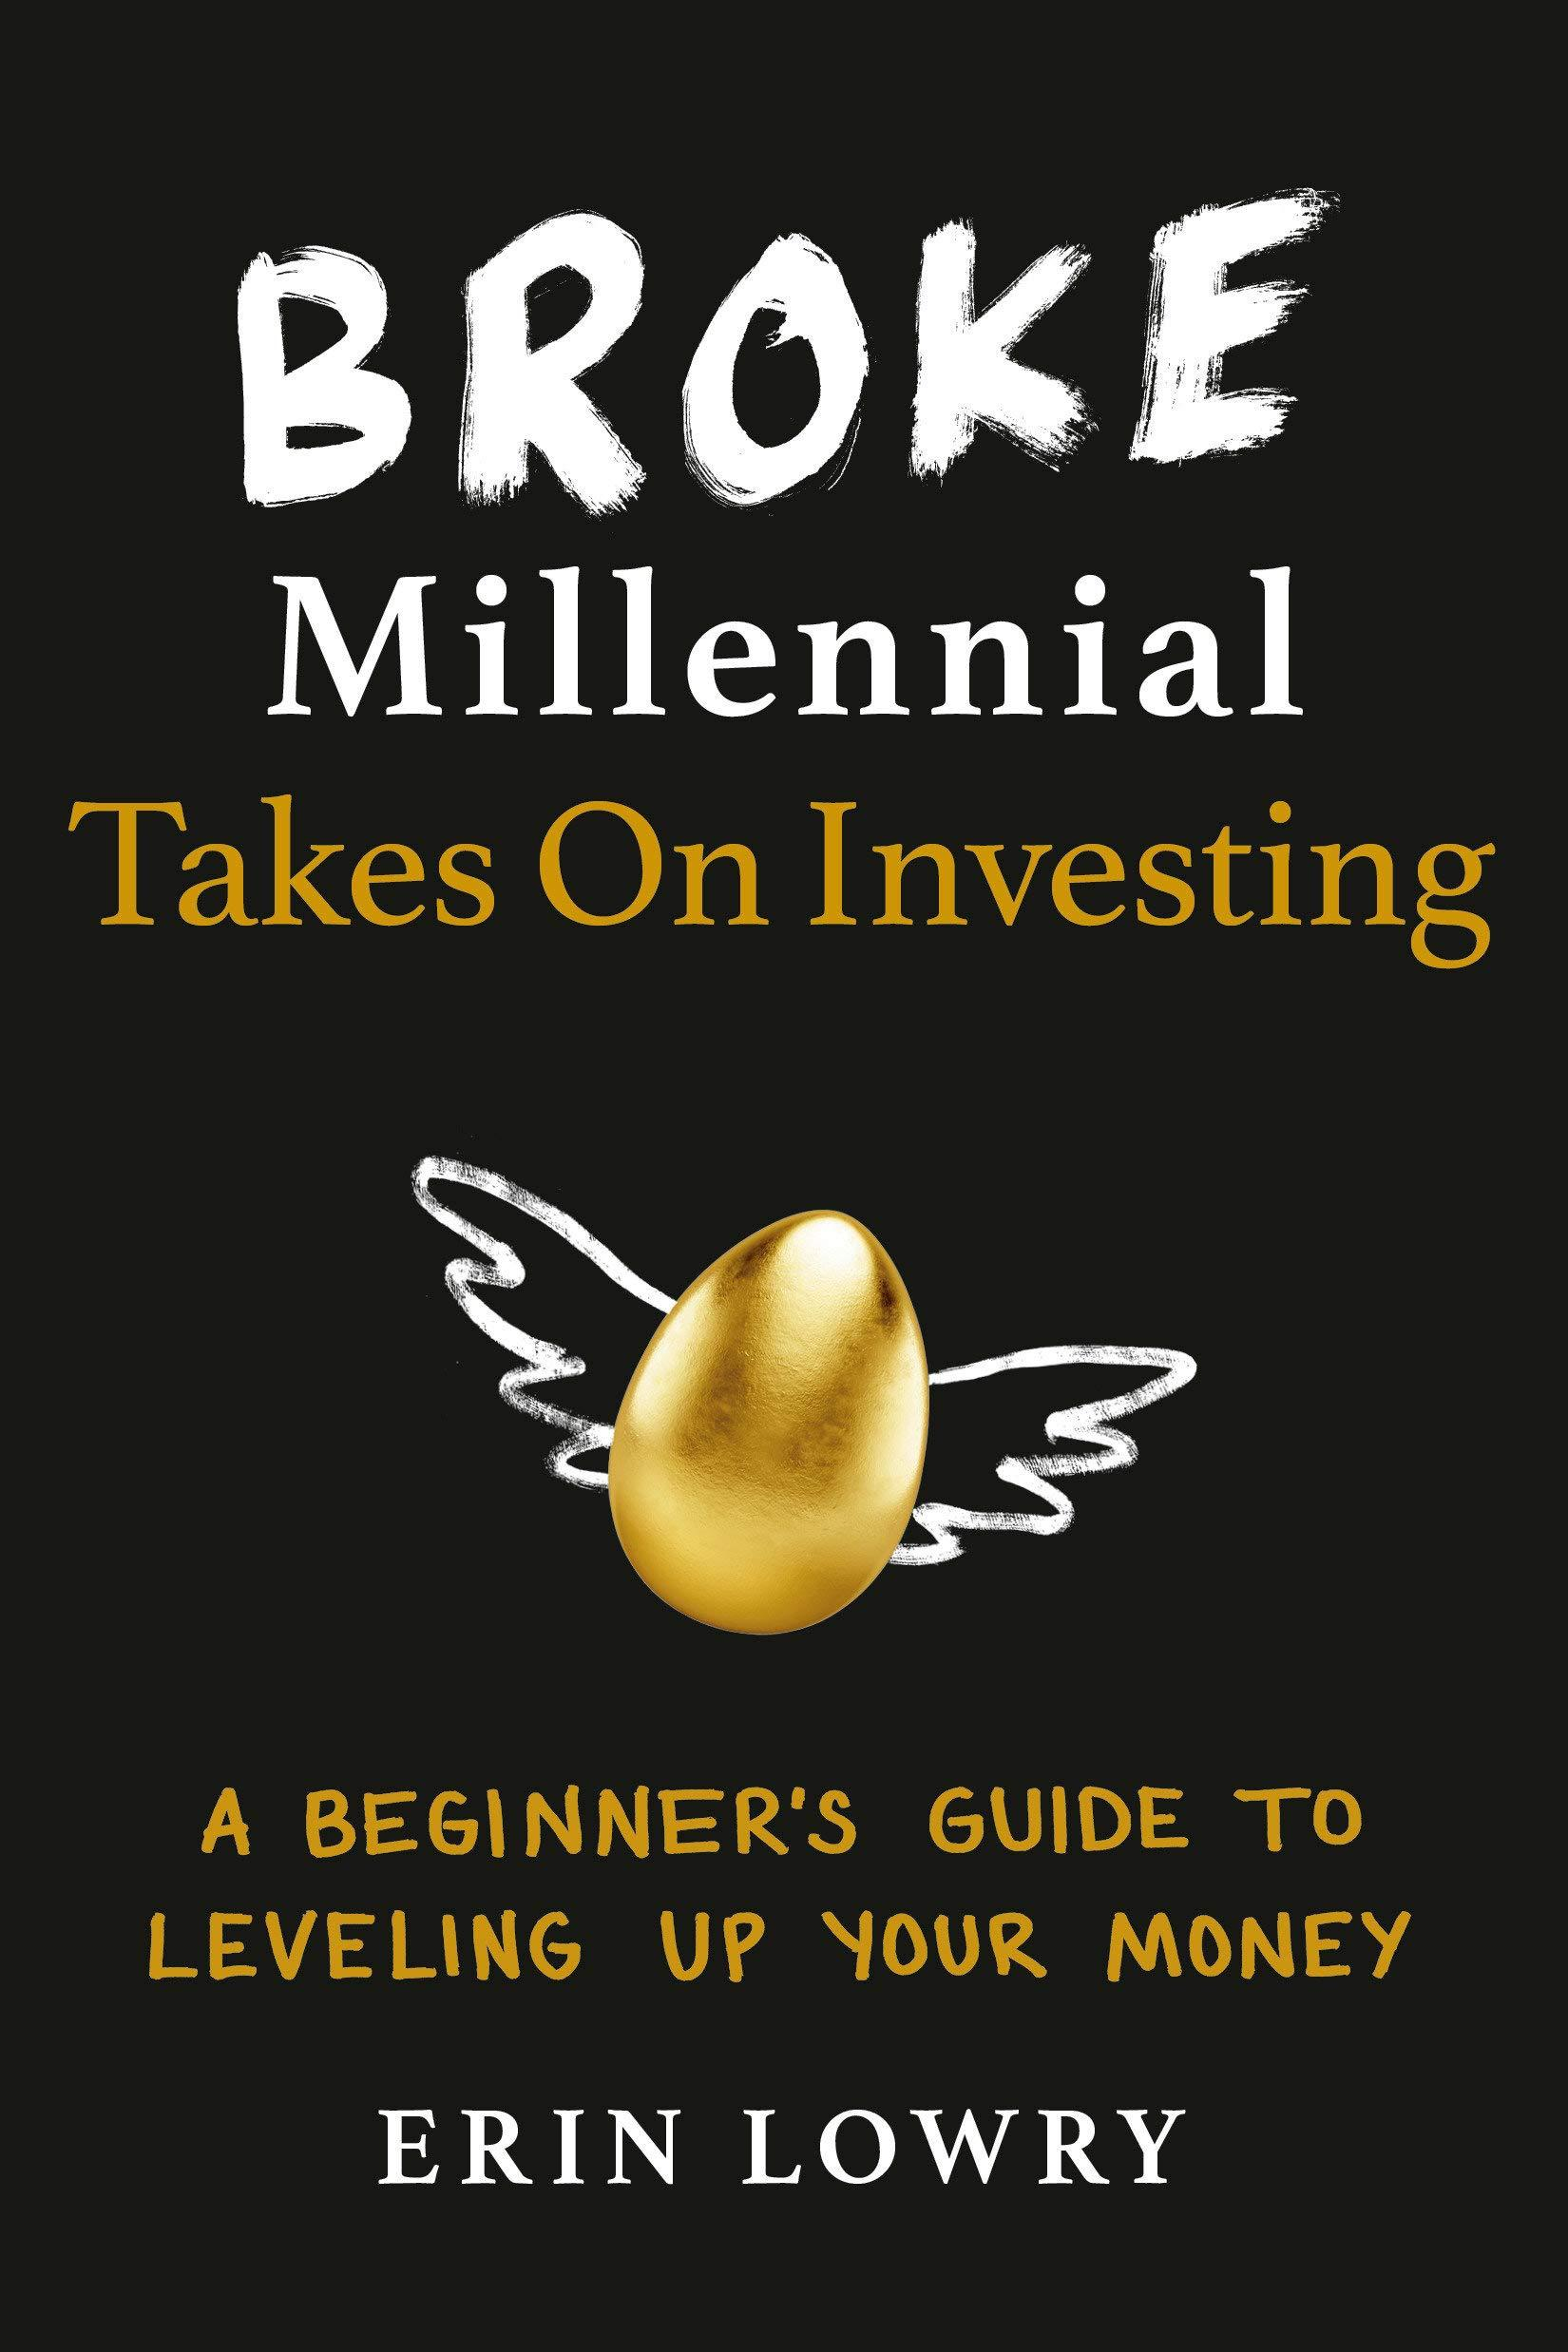 Broke Millennial Takes On Investing: A Beginners Guide to Leveling Up Your Money by Erin Lowry